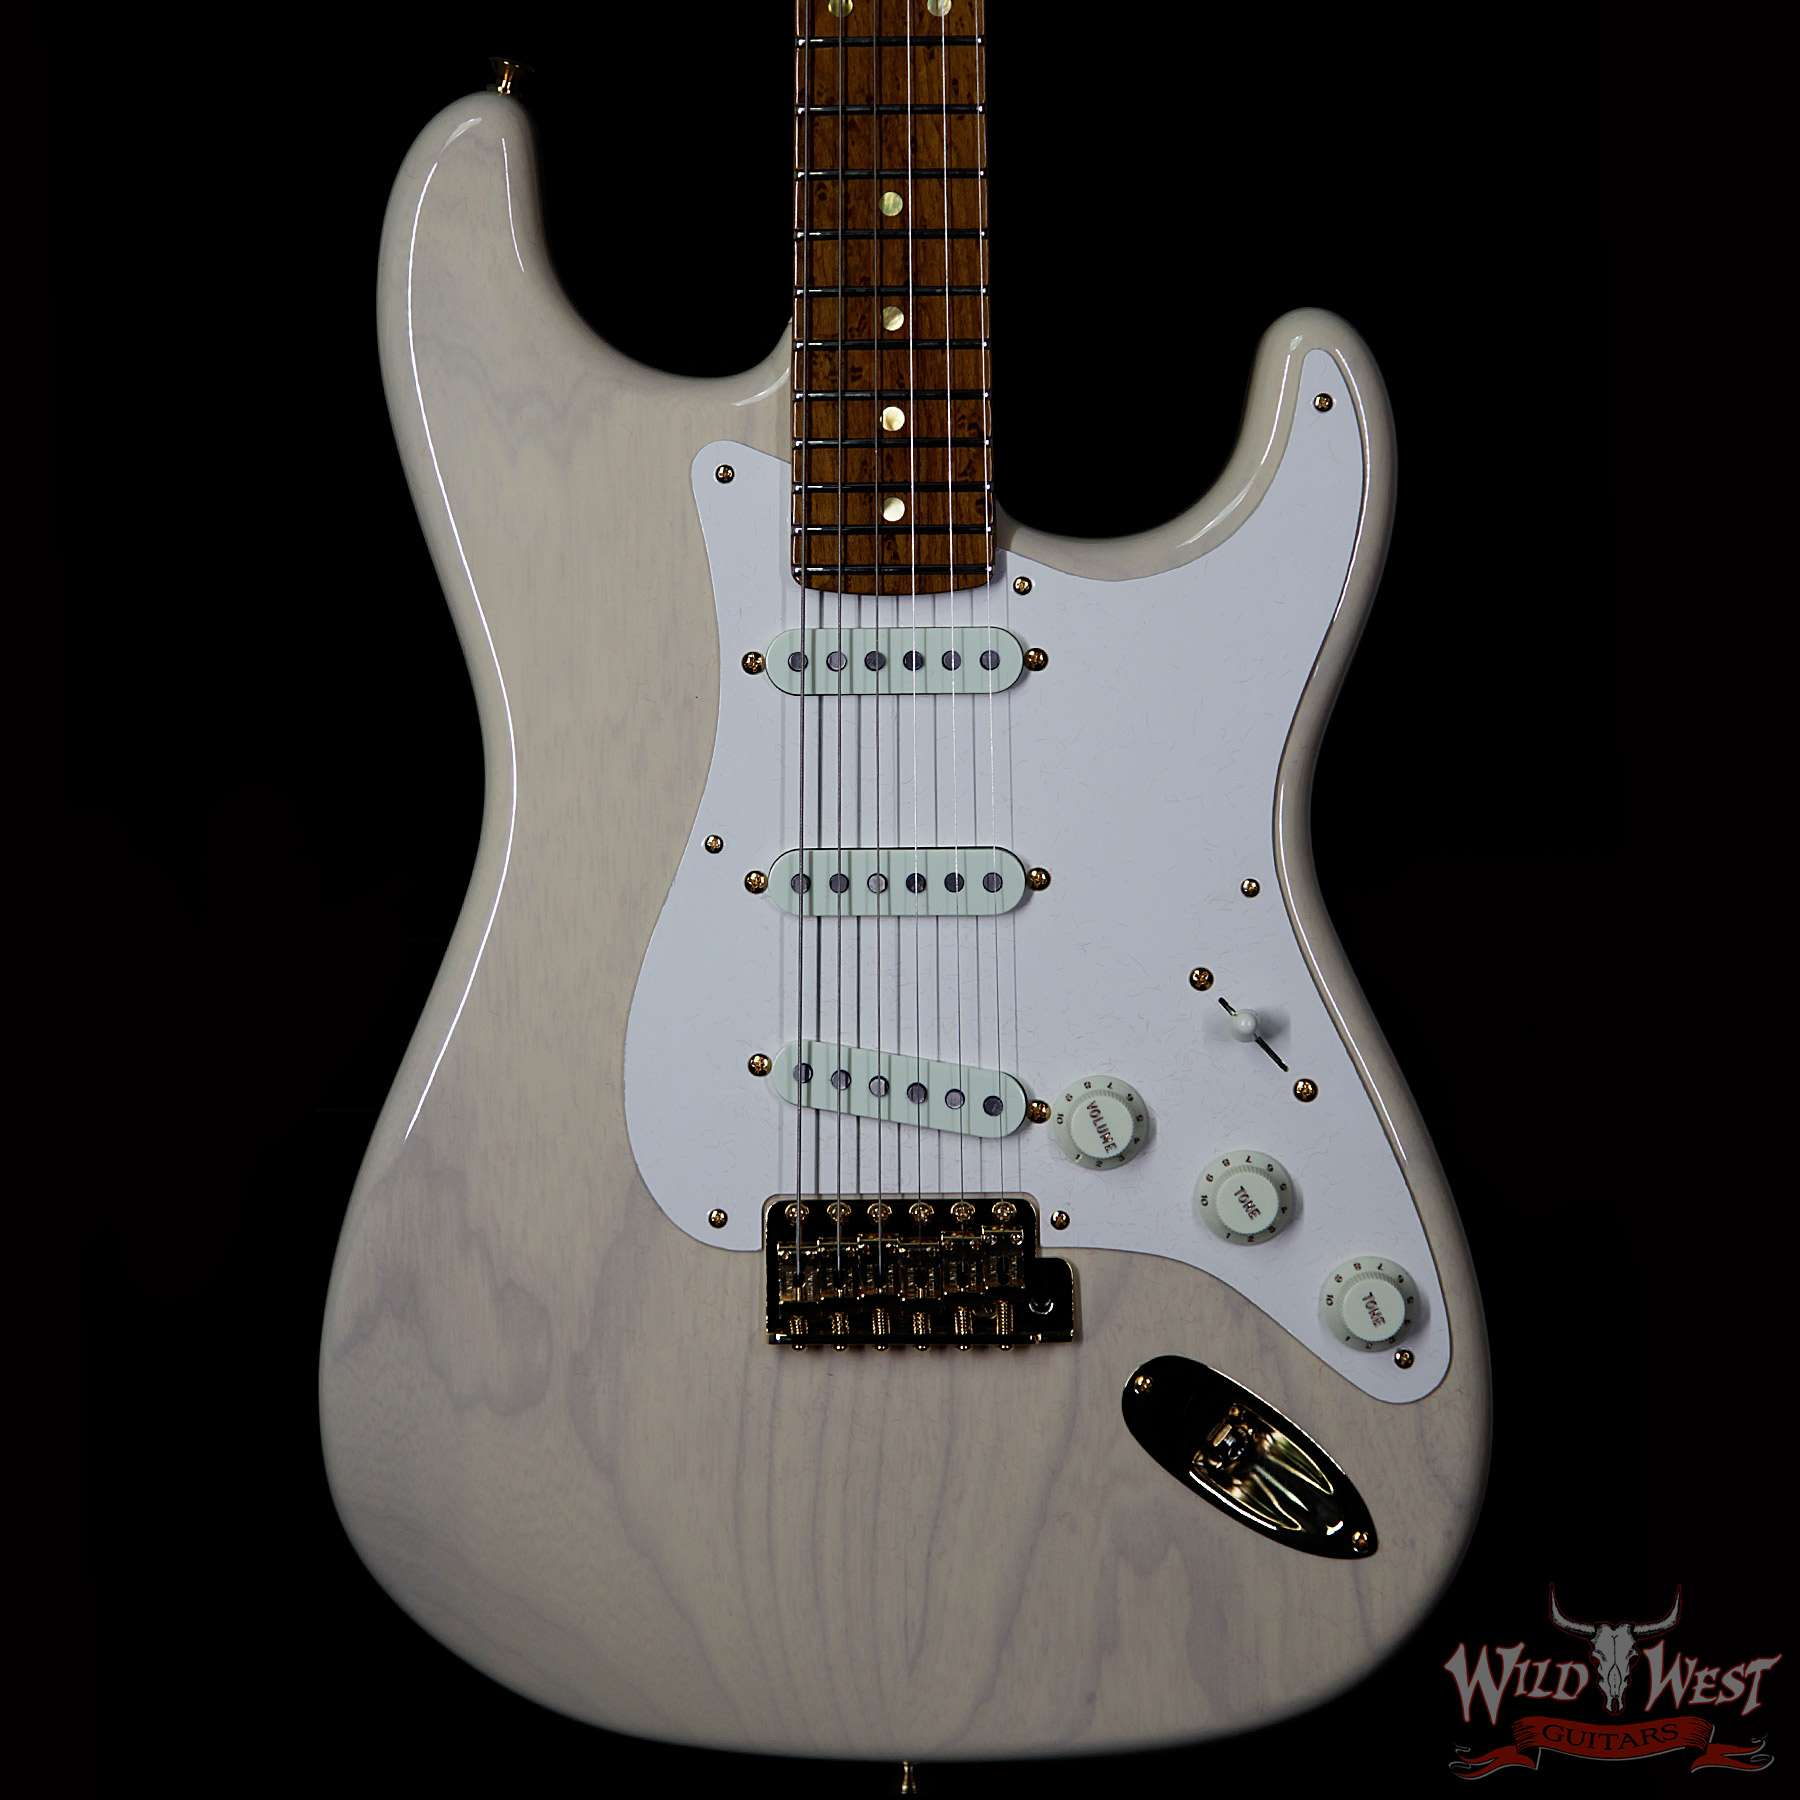 fender custom shop 2017 namm ltd roasted neck american custom stratocaster nos vintage blonde. Black Bedroom Furniture Sets. Home Design Ideas